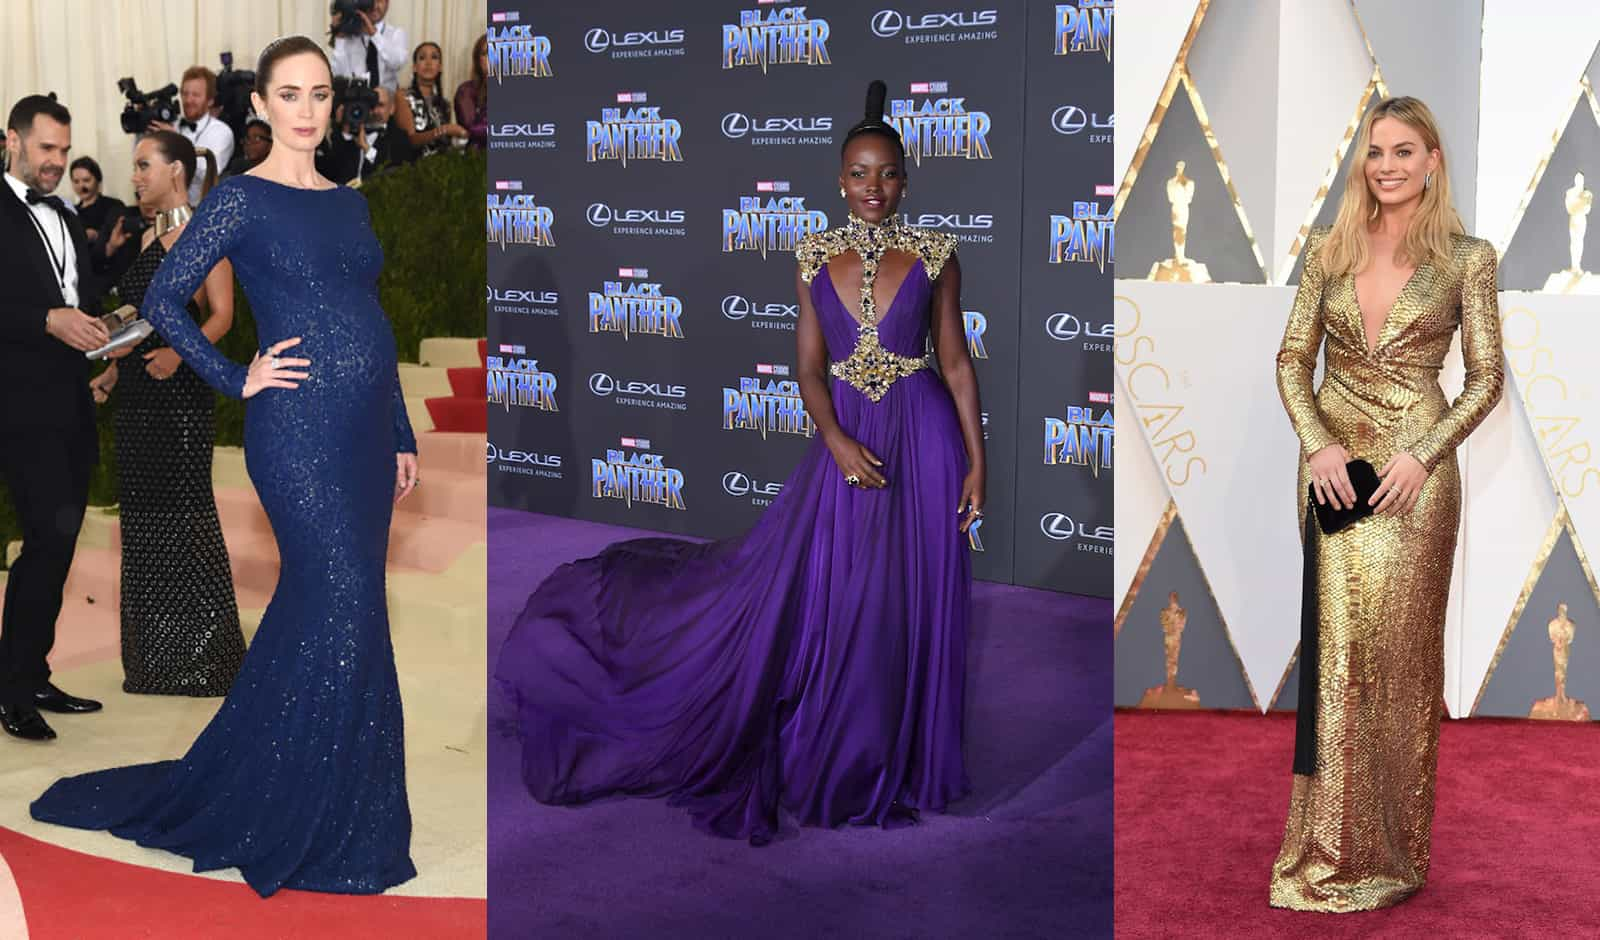 The Most Glamorous Actresses to Watch On The Oscars Red Carpet